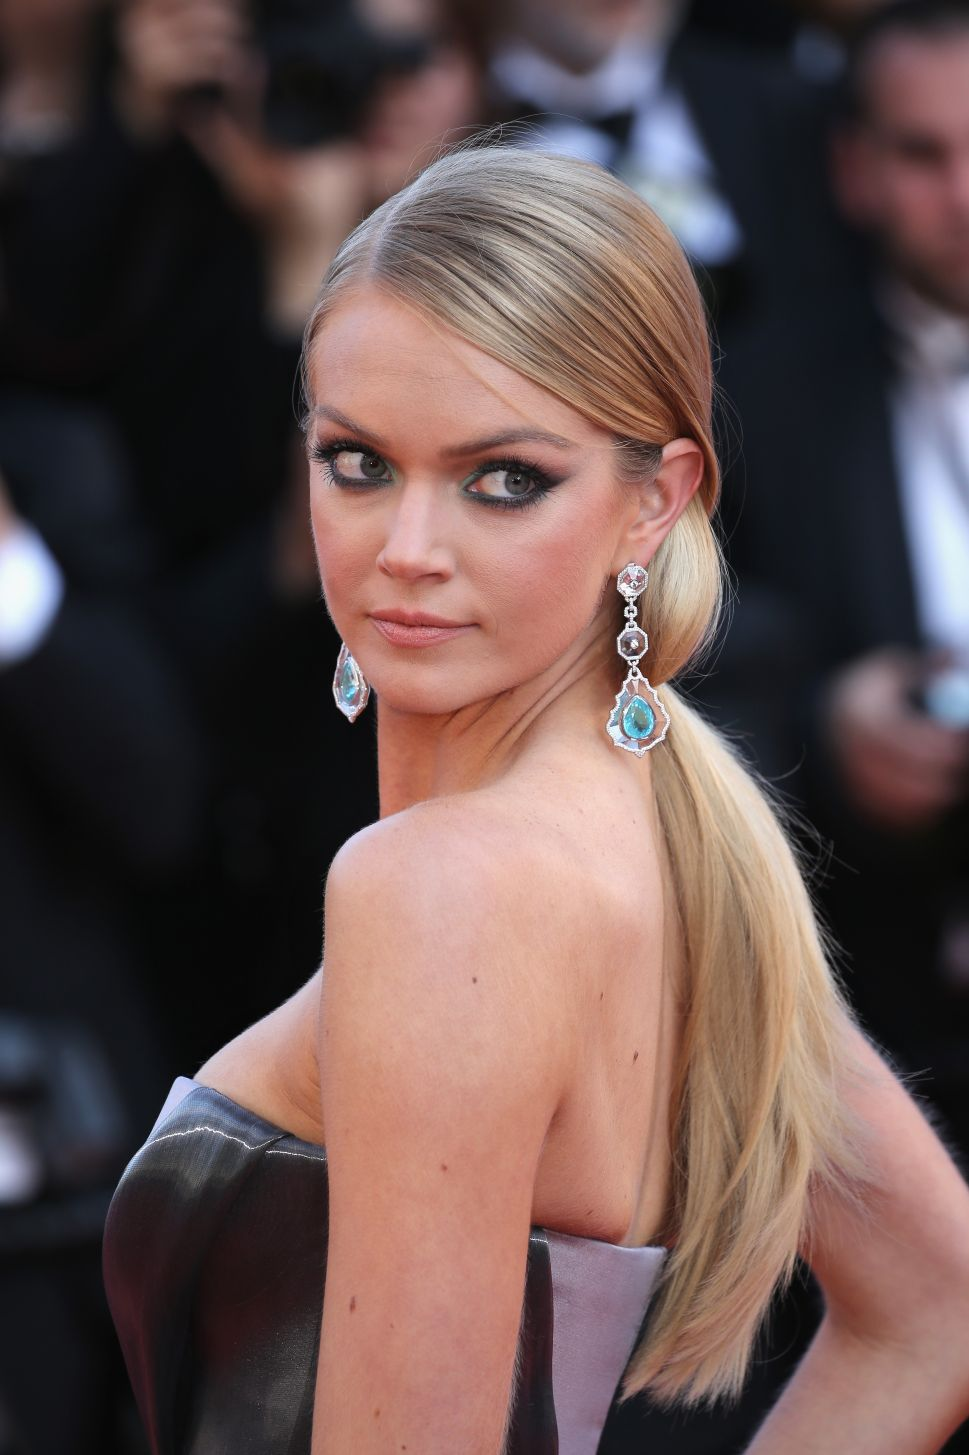 Lindsay Ellingson's Makeup Debut, Thom Browne's Suit Theory and More News to Know